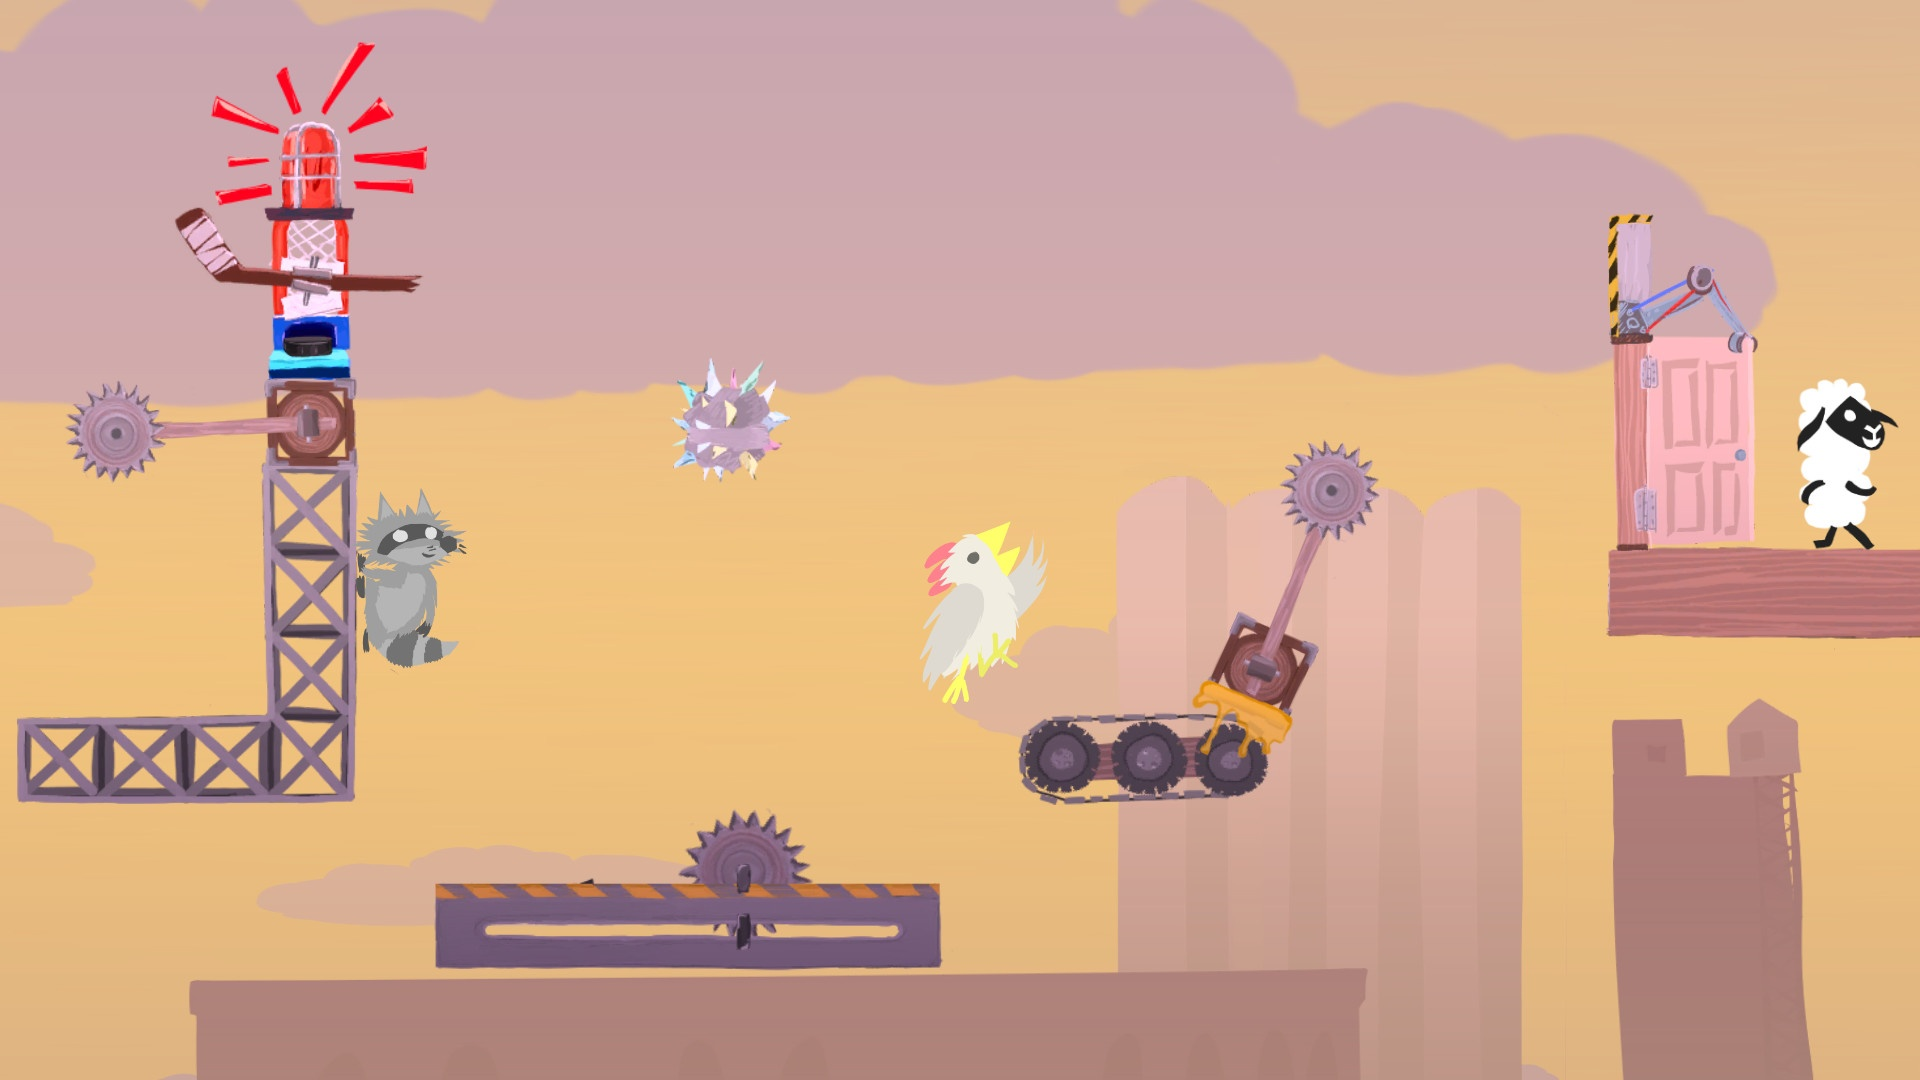 2D, Action, adventure, casual, Clever Endeavour Games, indie, Platformer, PS4, PS4 Review, Rating 5/10, Ultimate Chicken Horse, Ultimate Chicken Horse Review